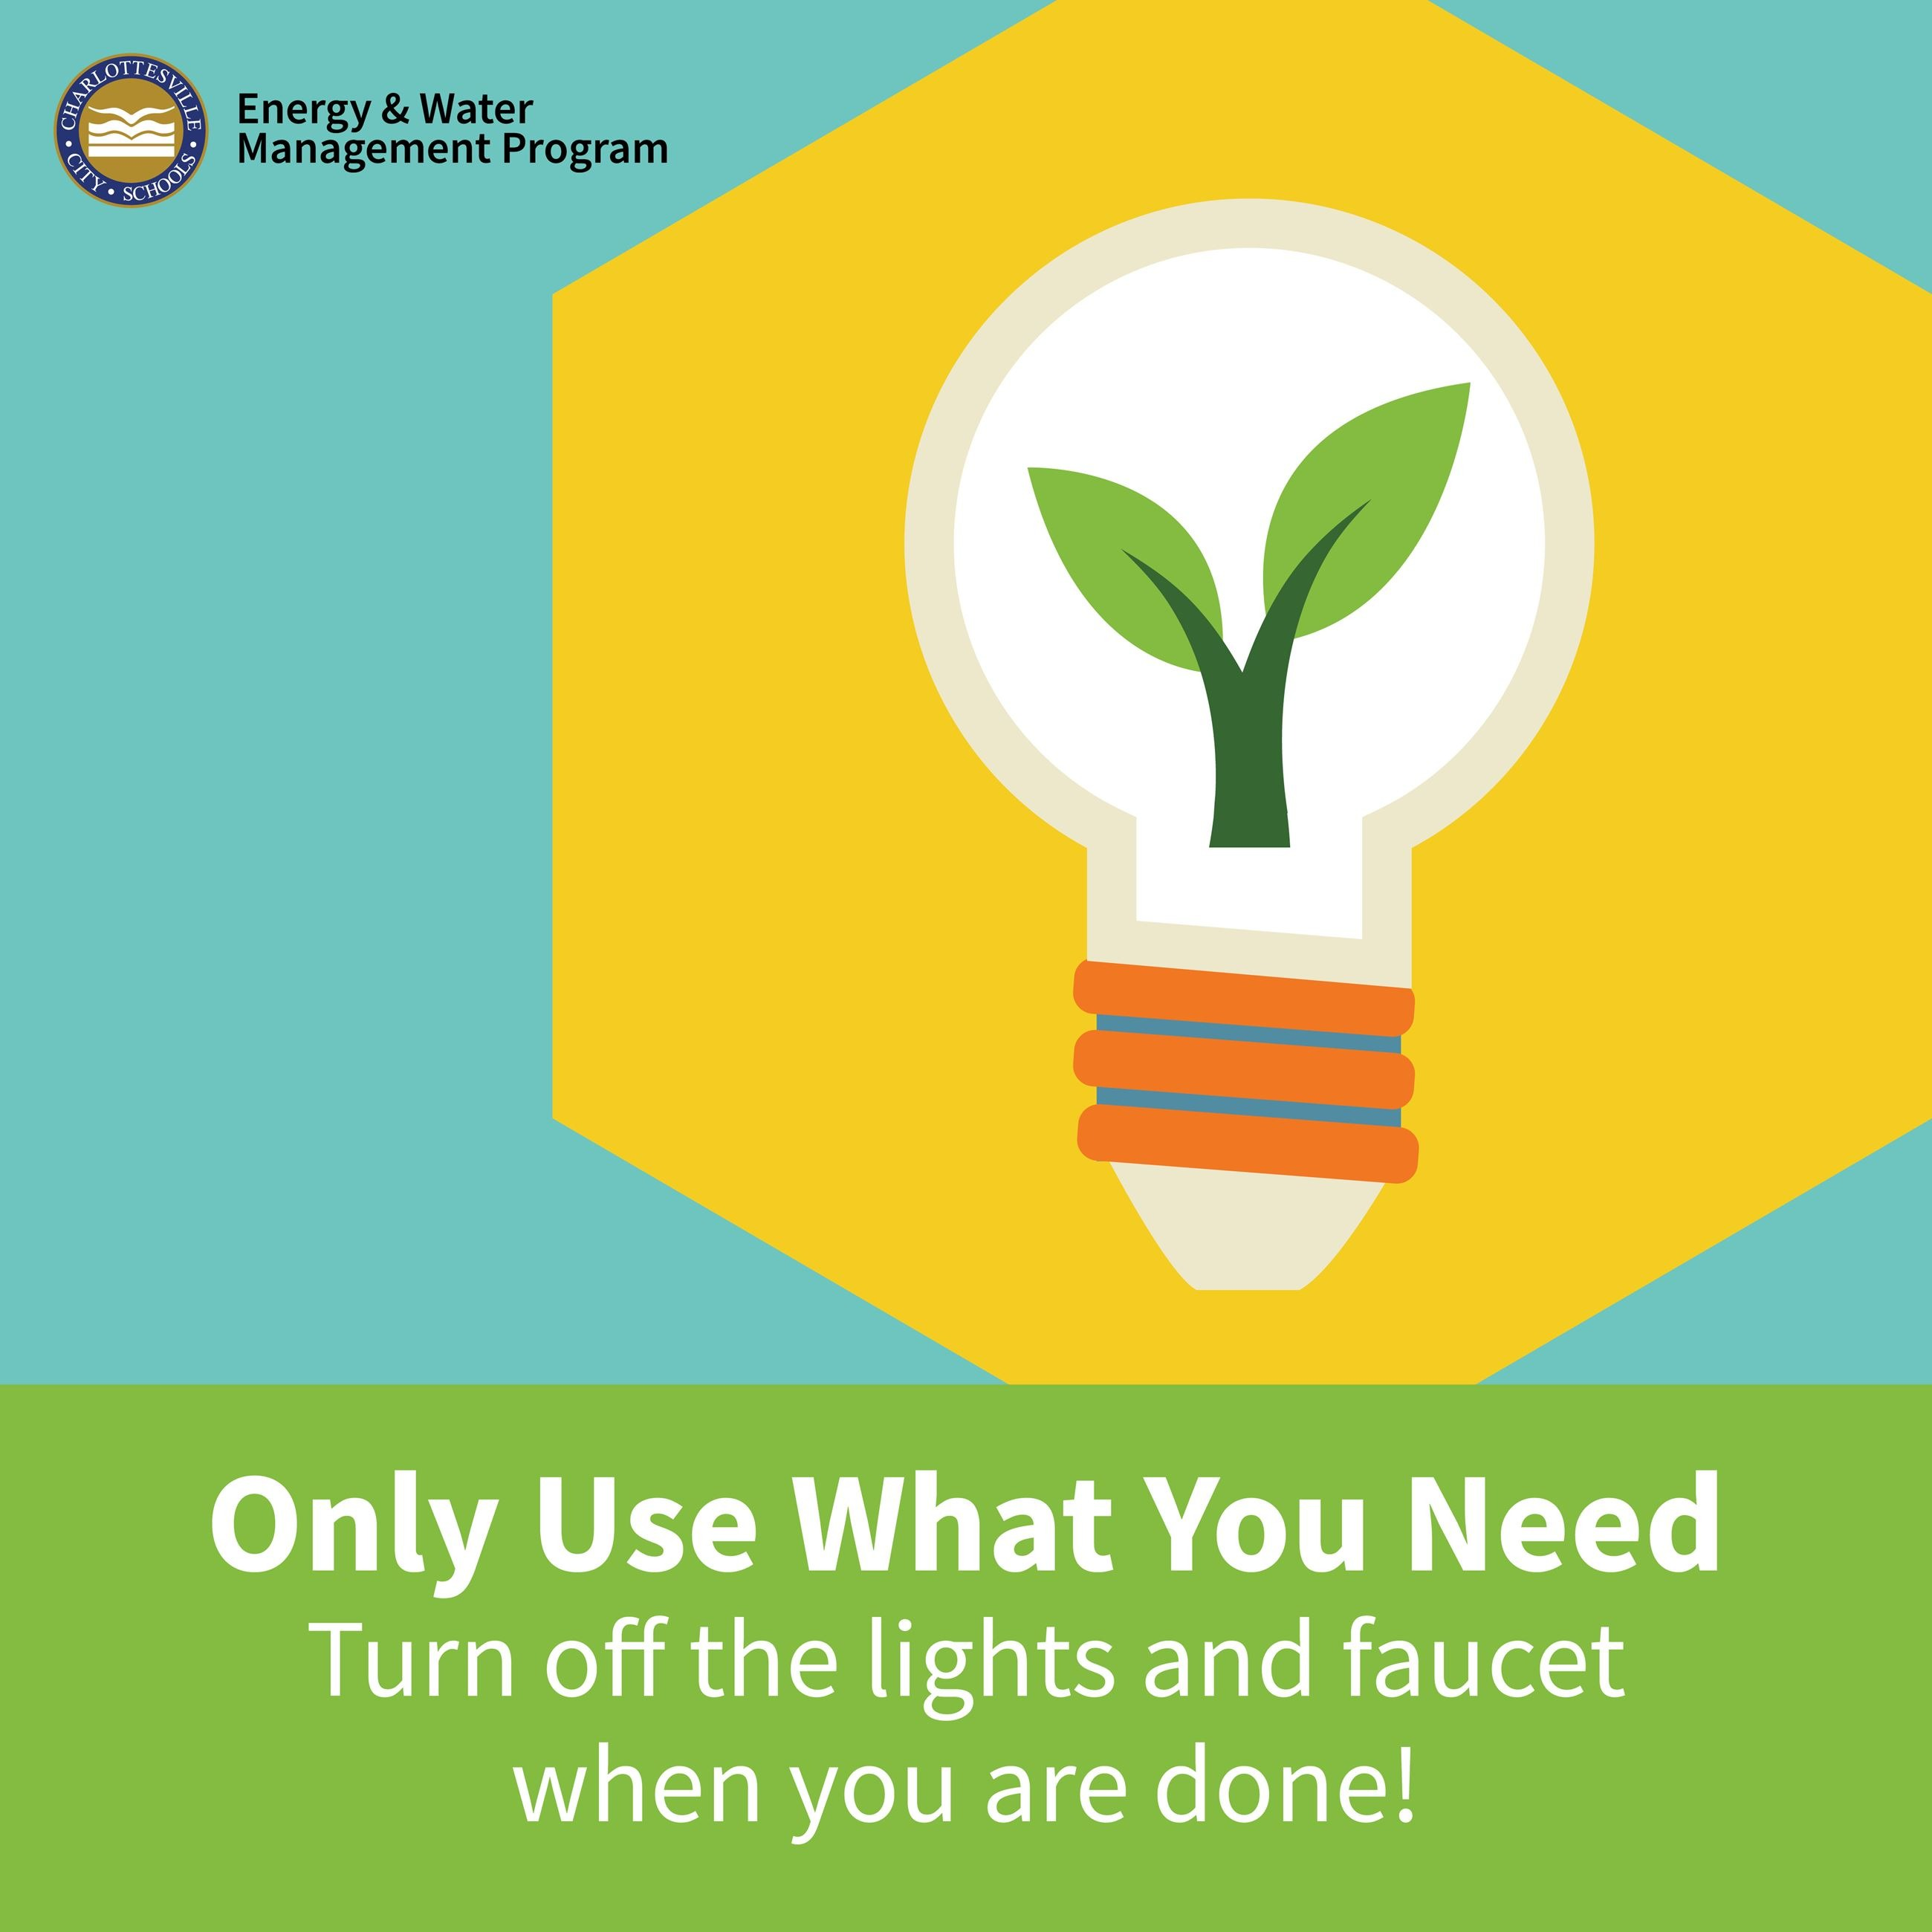 Only Use What You Need: Turn off the lights & faucet when you are done!